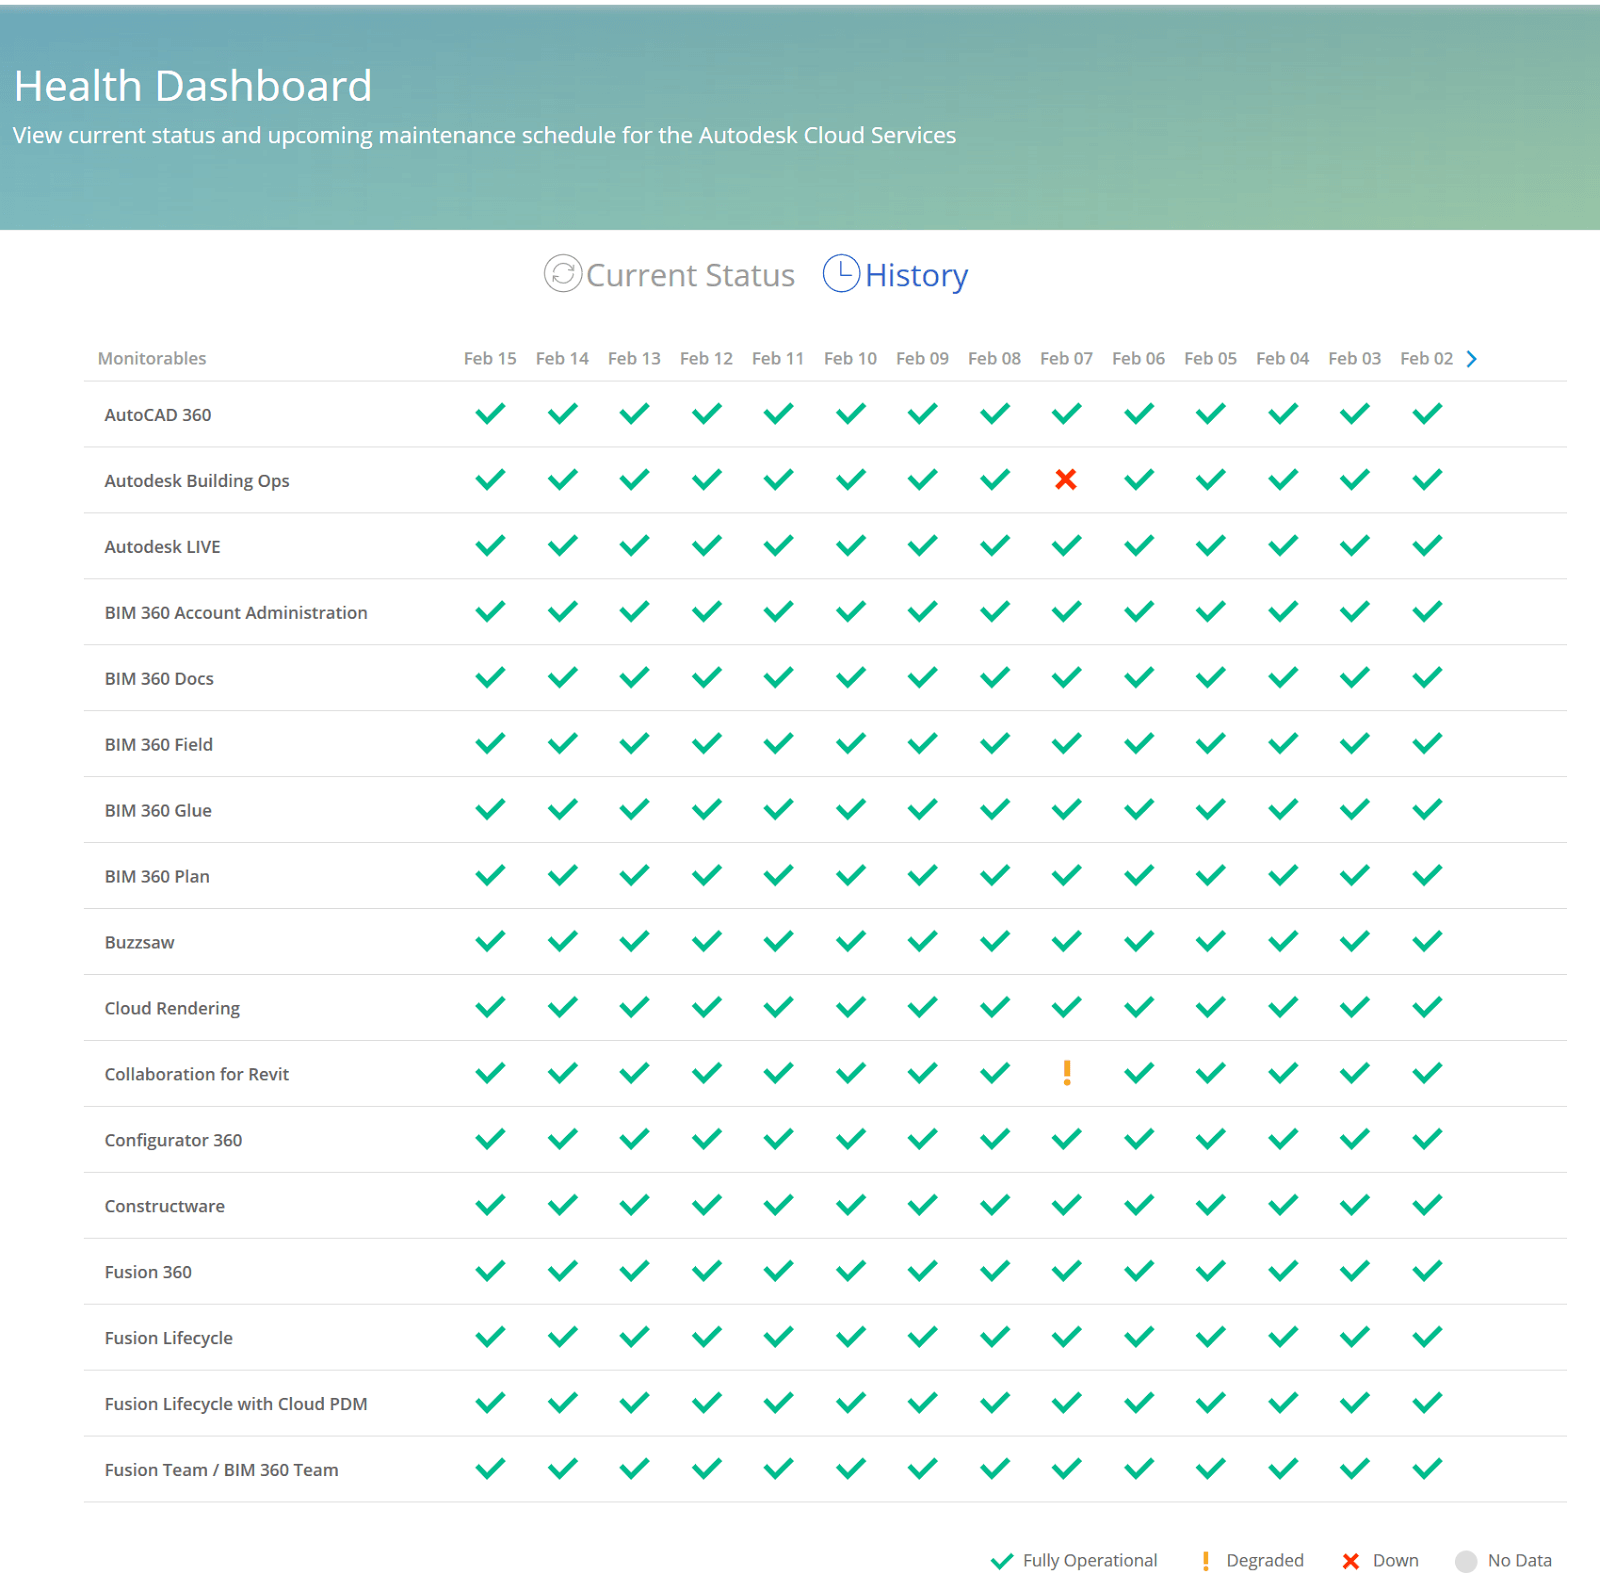 Check Cloud Service Status At a Glance with the Autodesk Health Dashboard